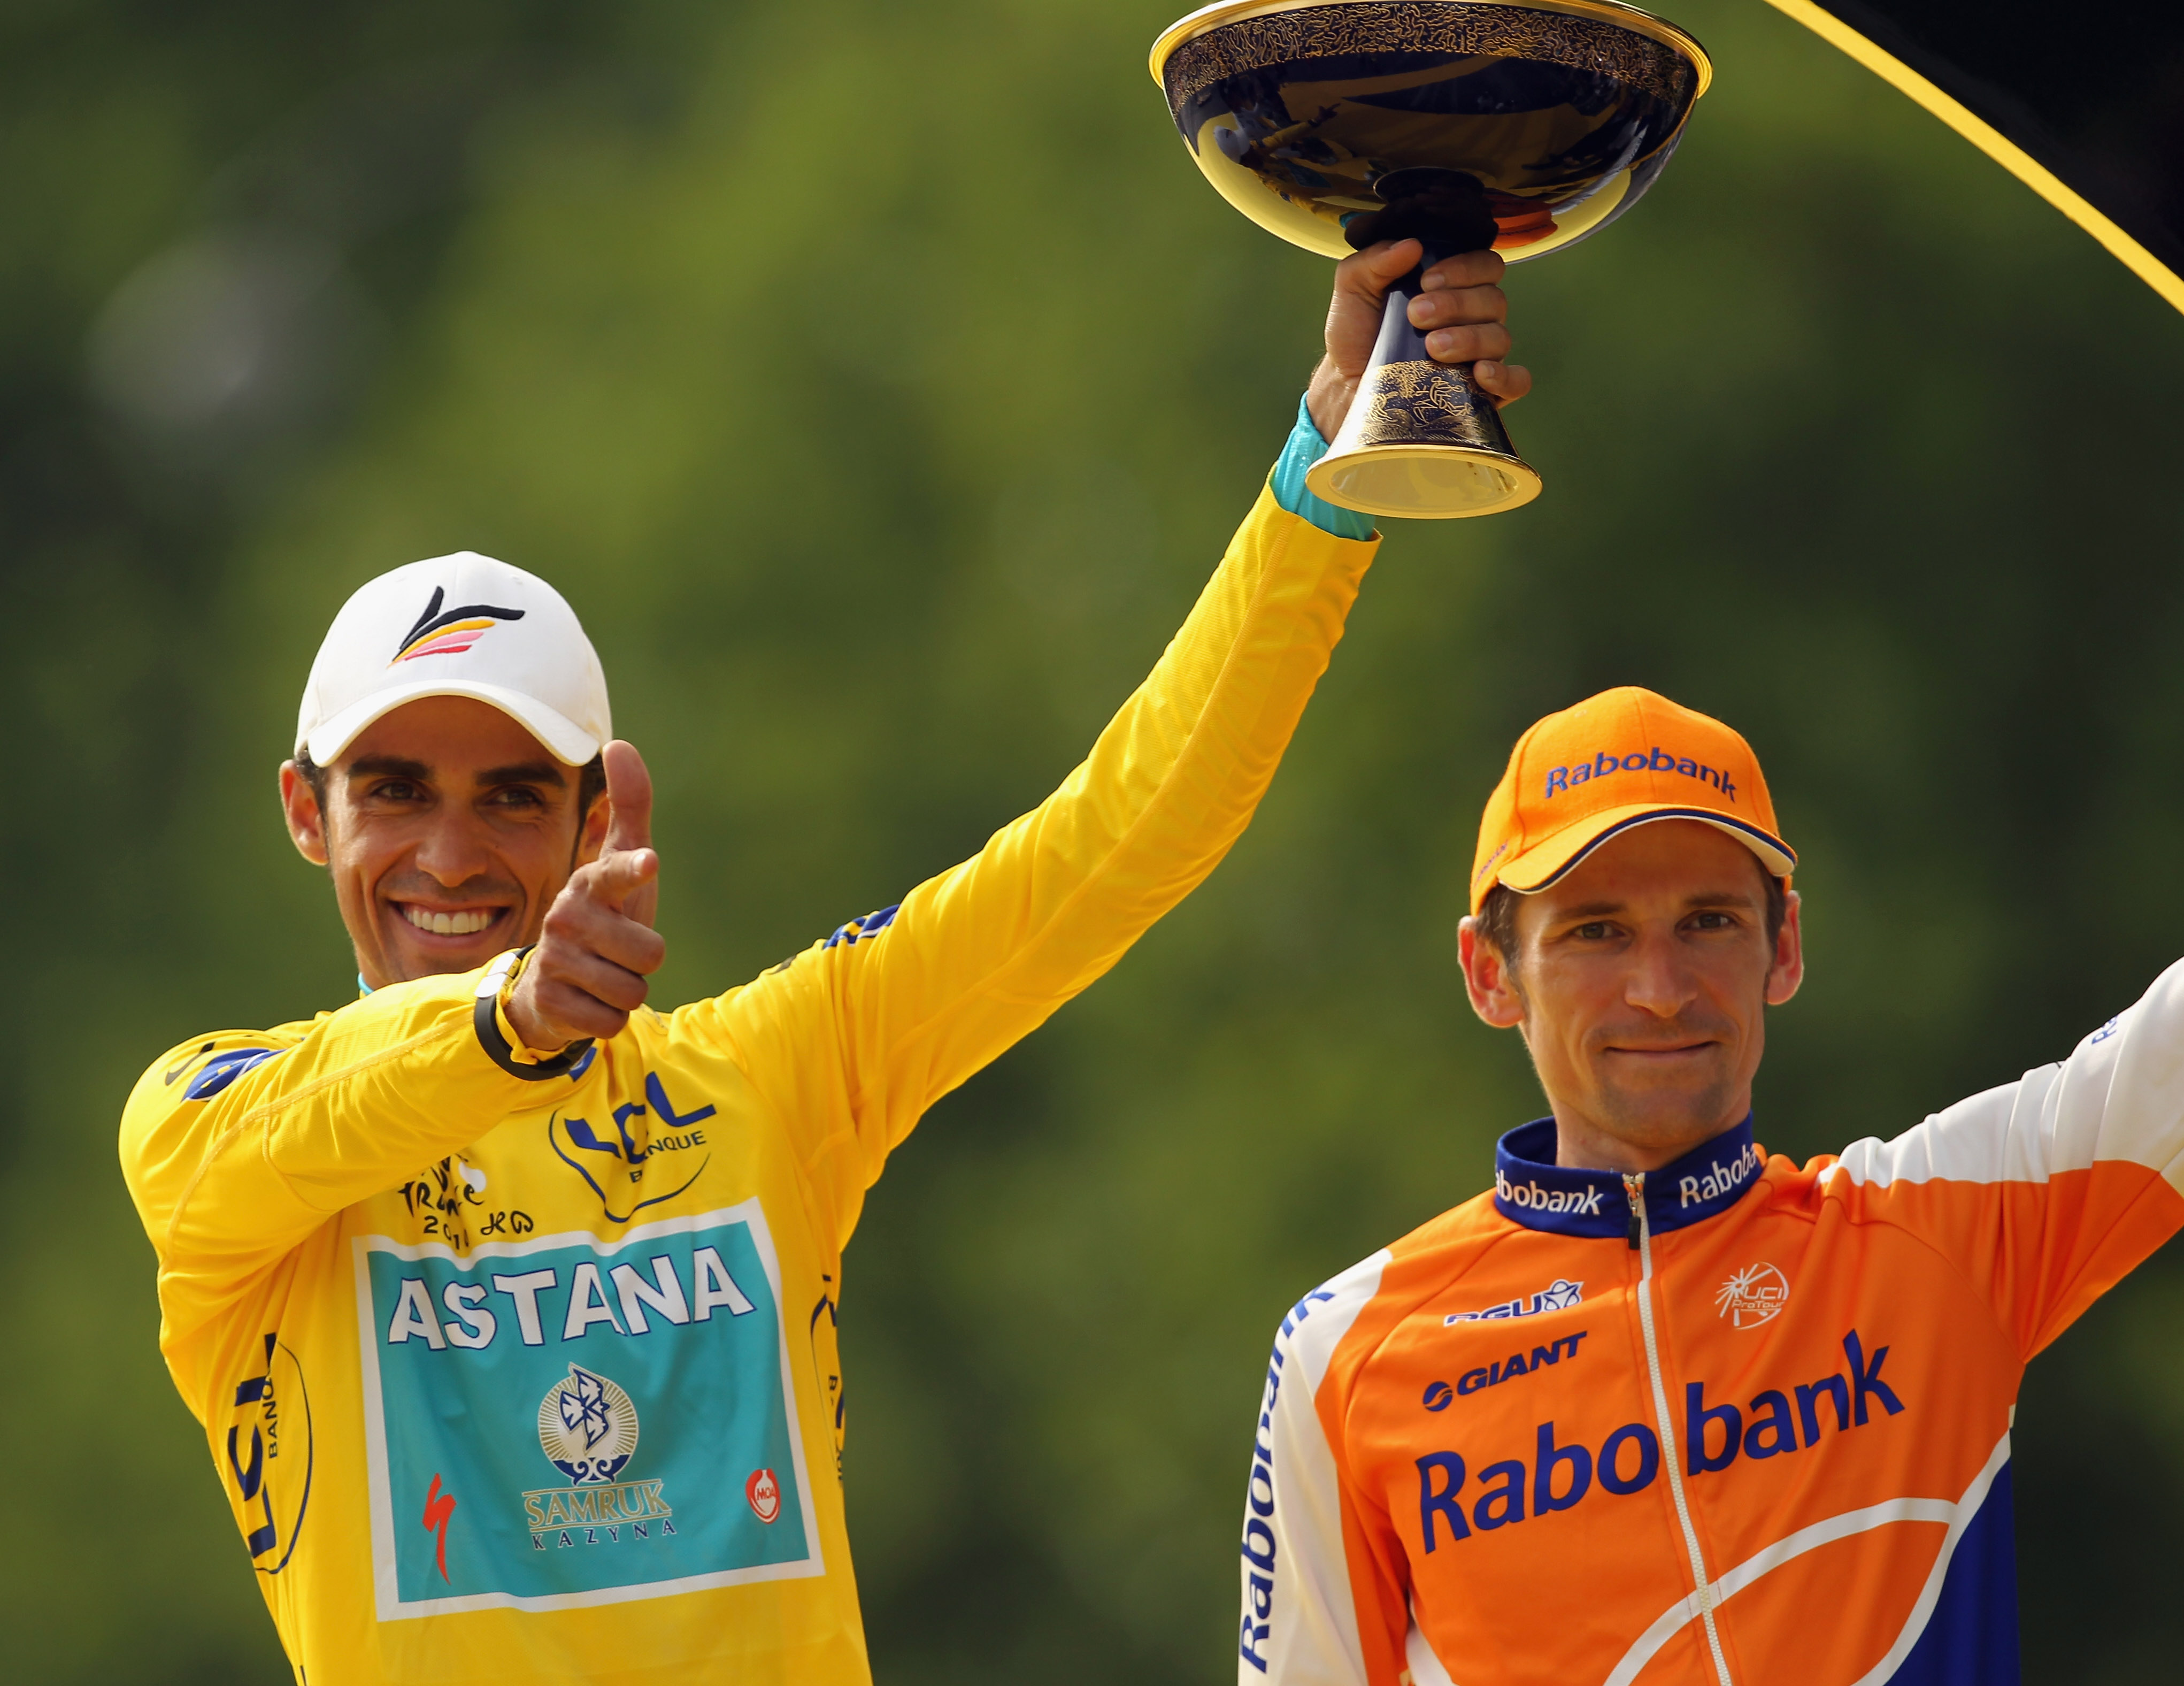 PARIS - JULY 25:  Alberto Contador of team Astana (L) celebrates as Denis Menchov of team Rabobank looks on after the twentieth and final stage of Le Tour de France 2010, from Longjumeau to the Champs-Elysees in Paris on July 25, 2010 in Paris, France.  (